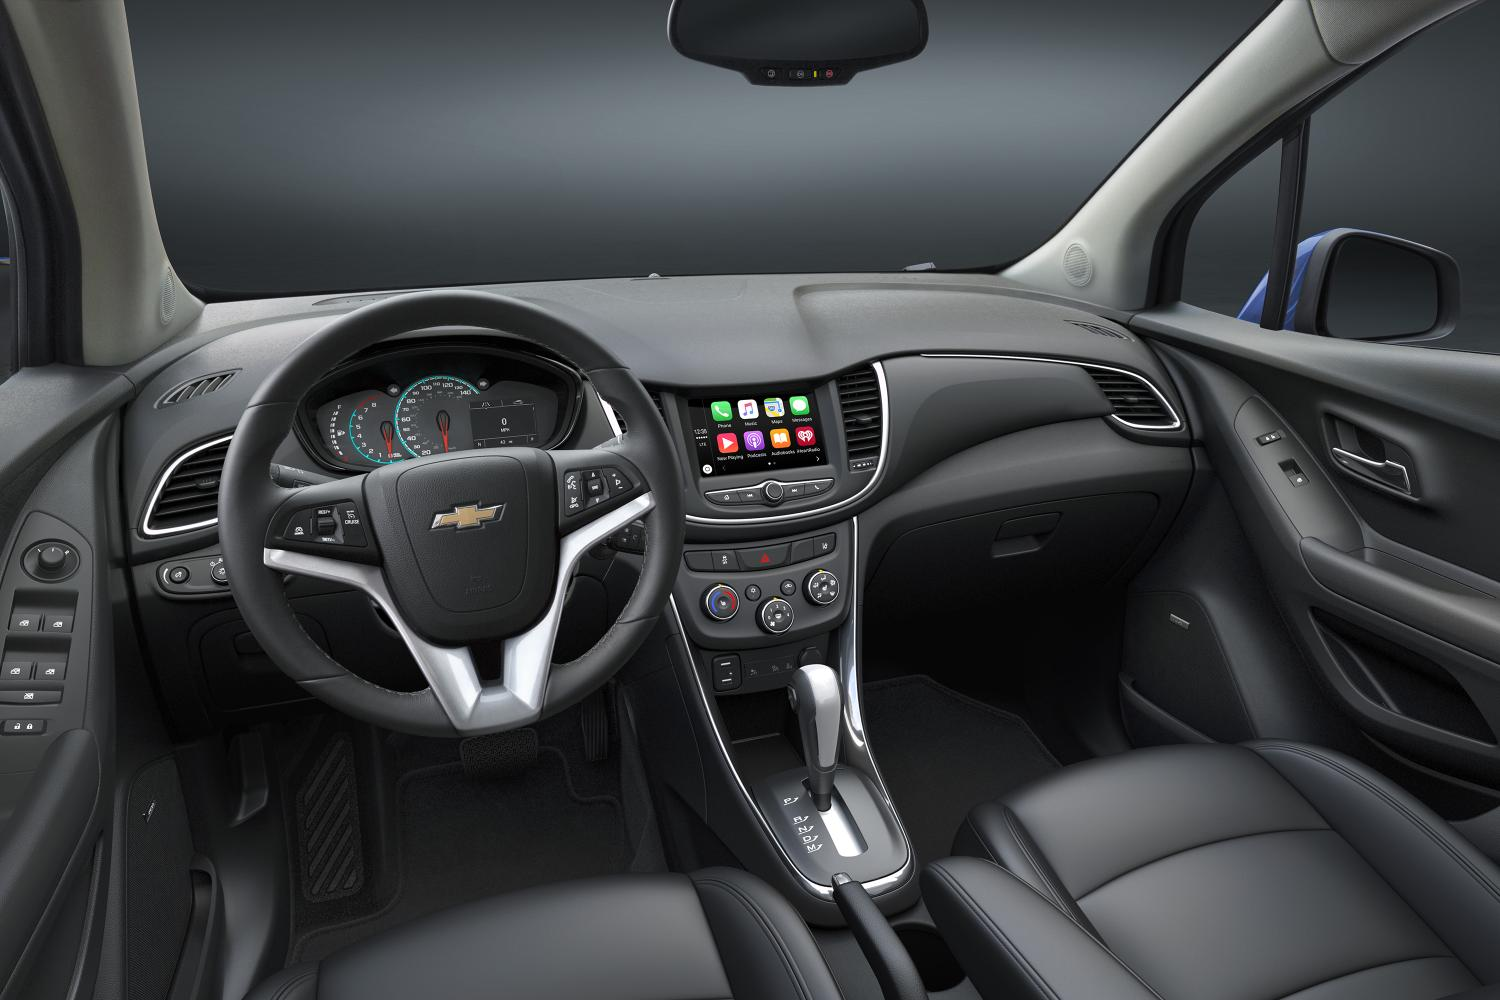 2019 Chevy Trax Interior Specs and Dimensions